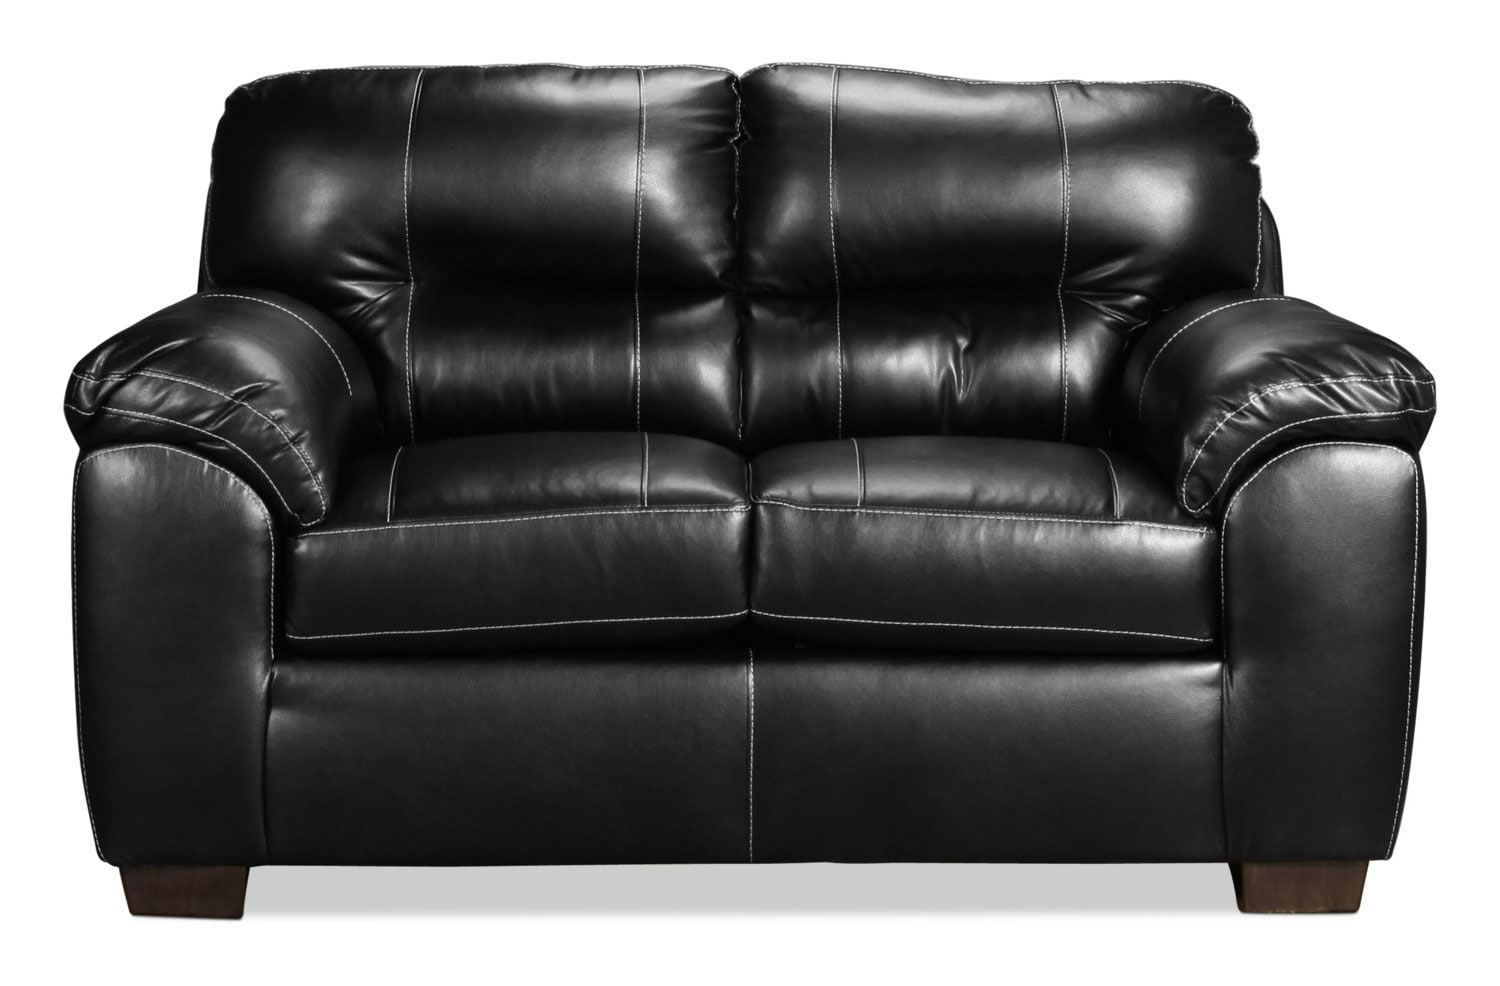 Rigley Loveseat - Black